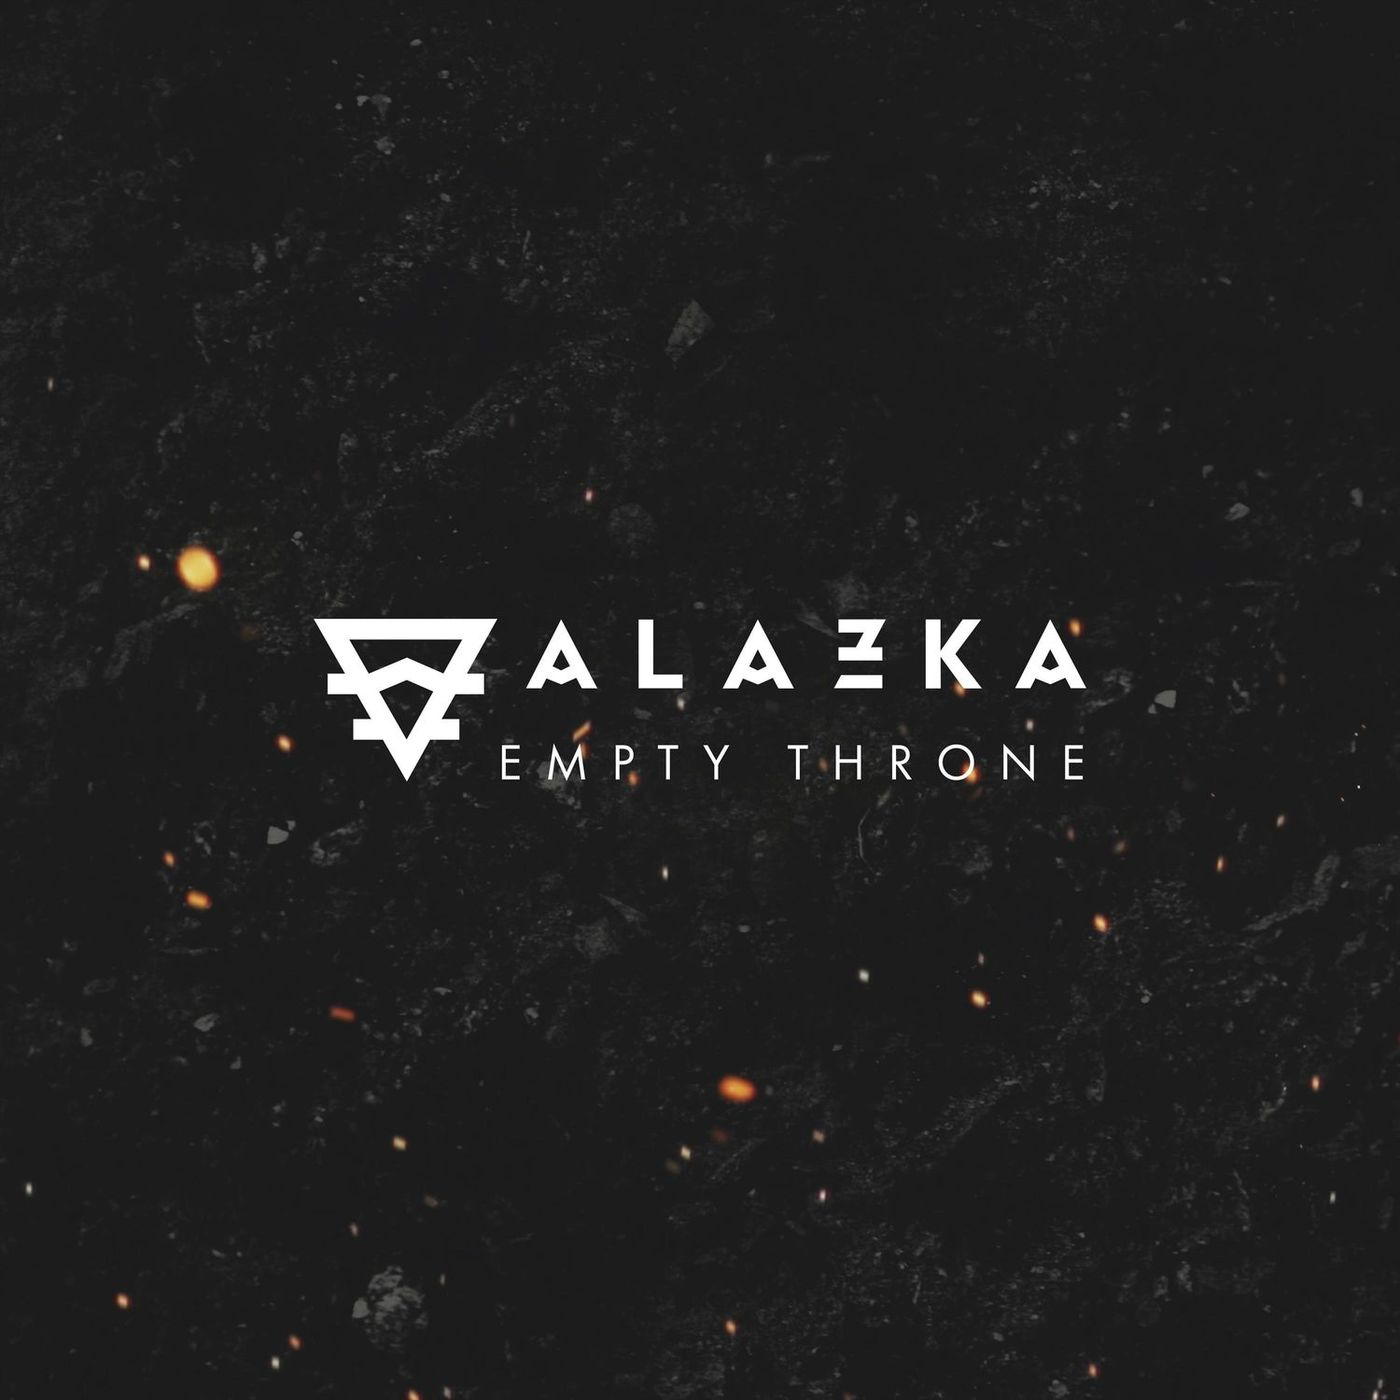 ALAZKA - Empty Throne [single] (2017)